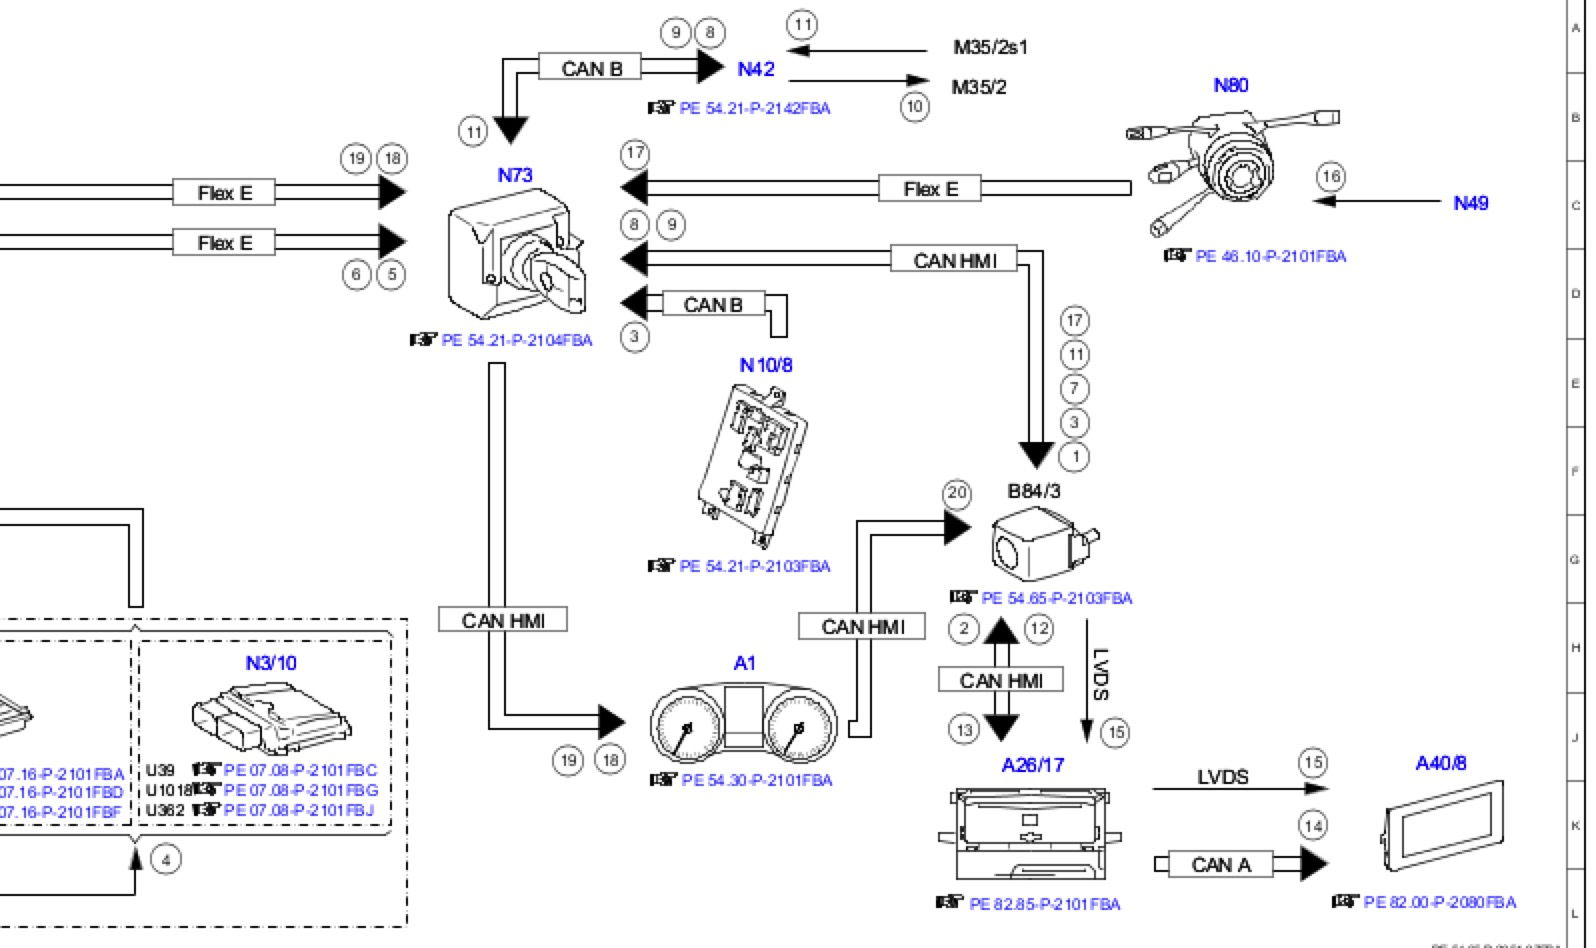 Mercedes Benz Electrical Wiring Diagram on mercedes benz fuse box diagram